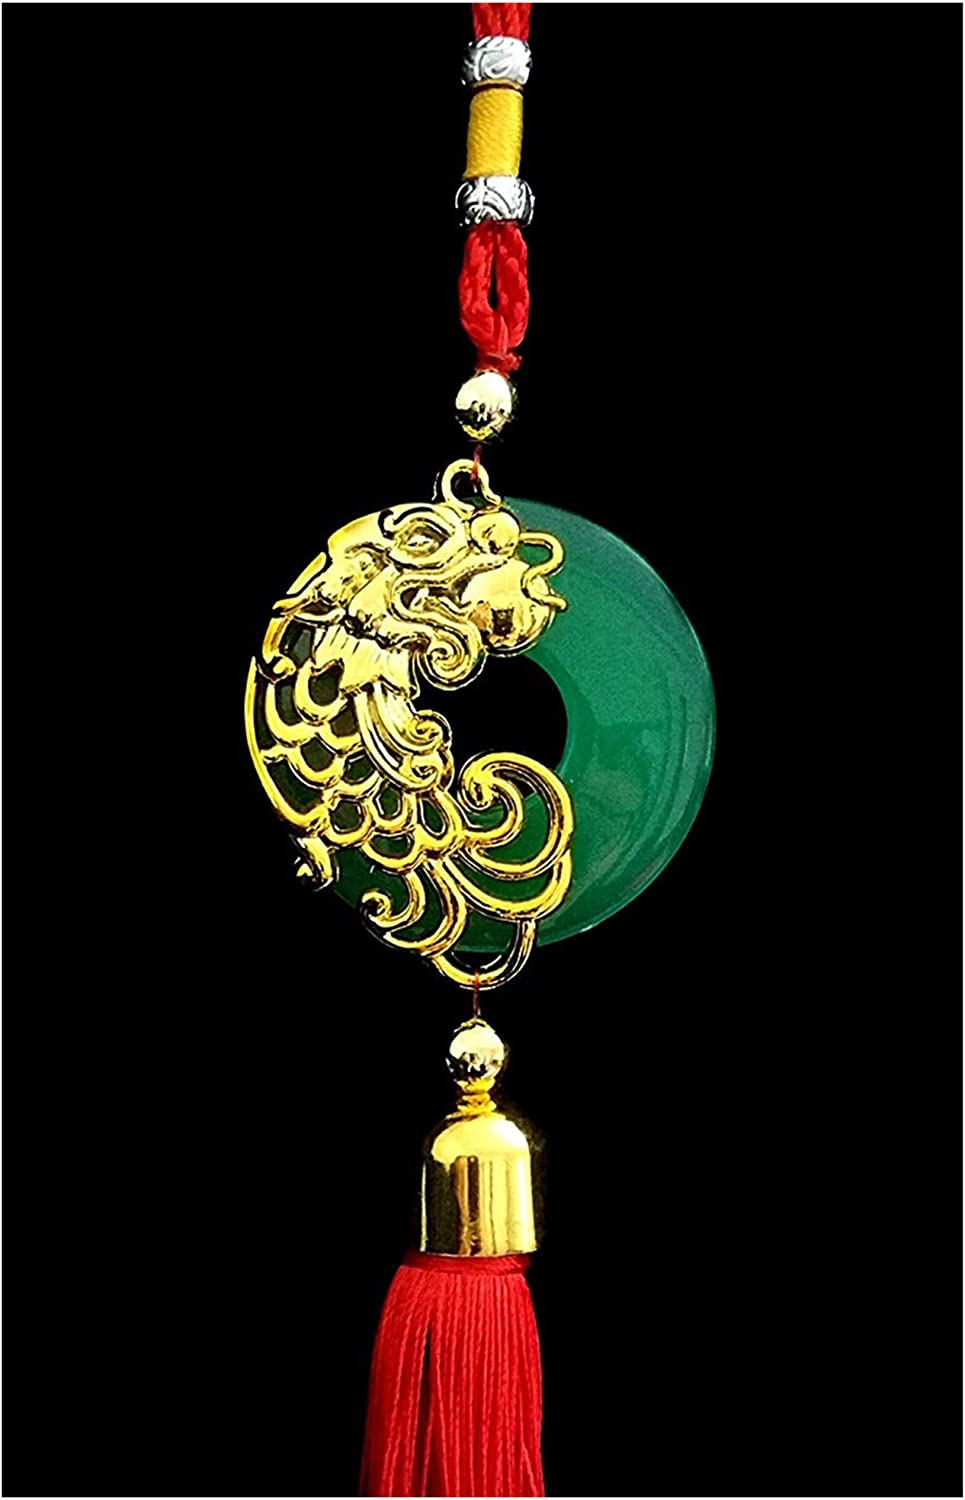 Betterdecor Handmade Feng Shui Chinese Dragon Car Wall Hanging Charm for Prosperity (with a Pouch)